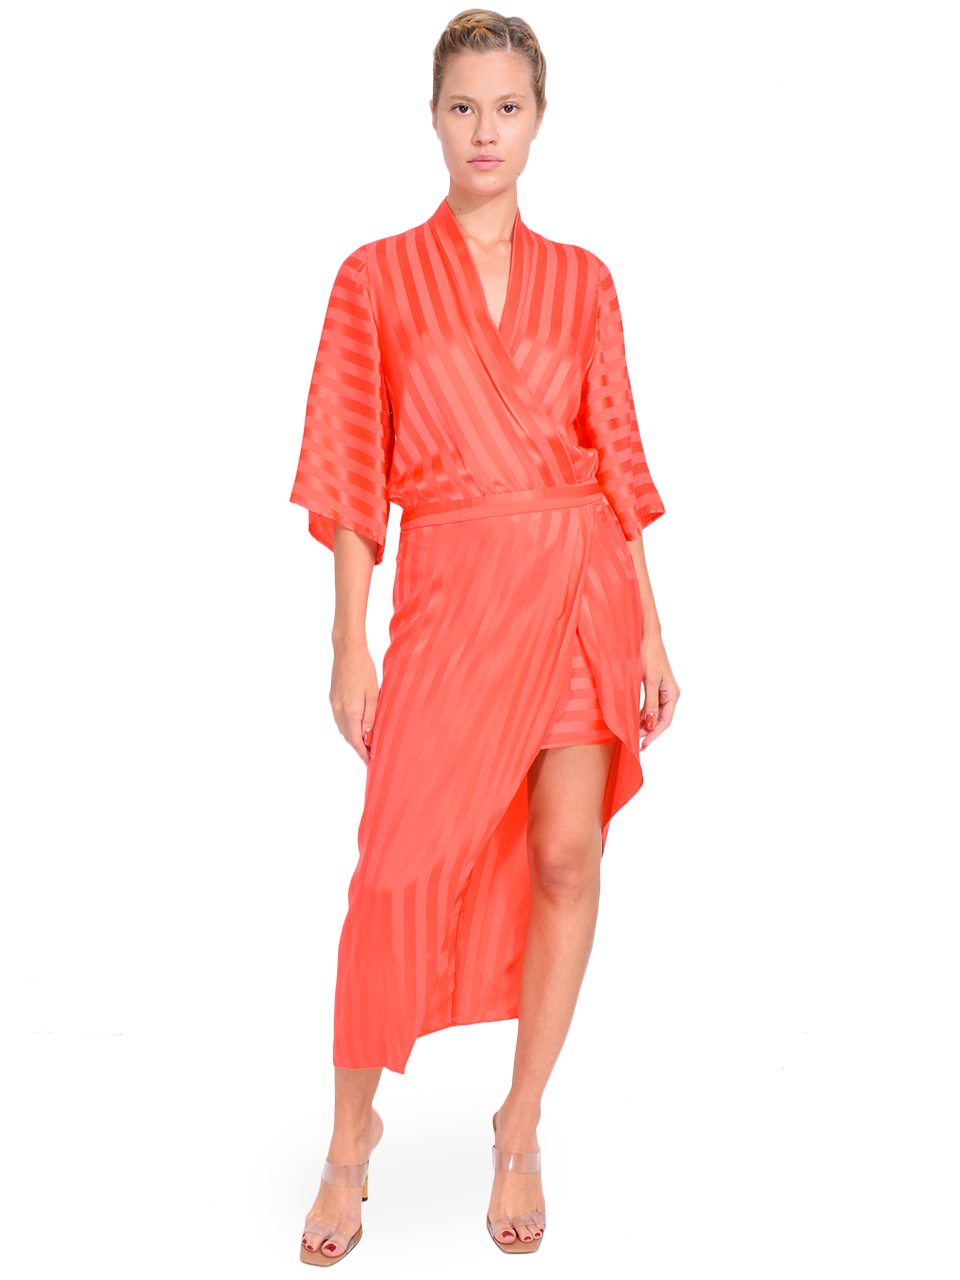 MICHELLE MASON Kimono Sleeve Dress in Watermelon Front View  X1https://cdn11.bigcommerce.com/s-3wu6n/products/33416/images/110527/21__80398.1601324056.244.365.jpg?c=2X2